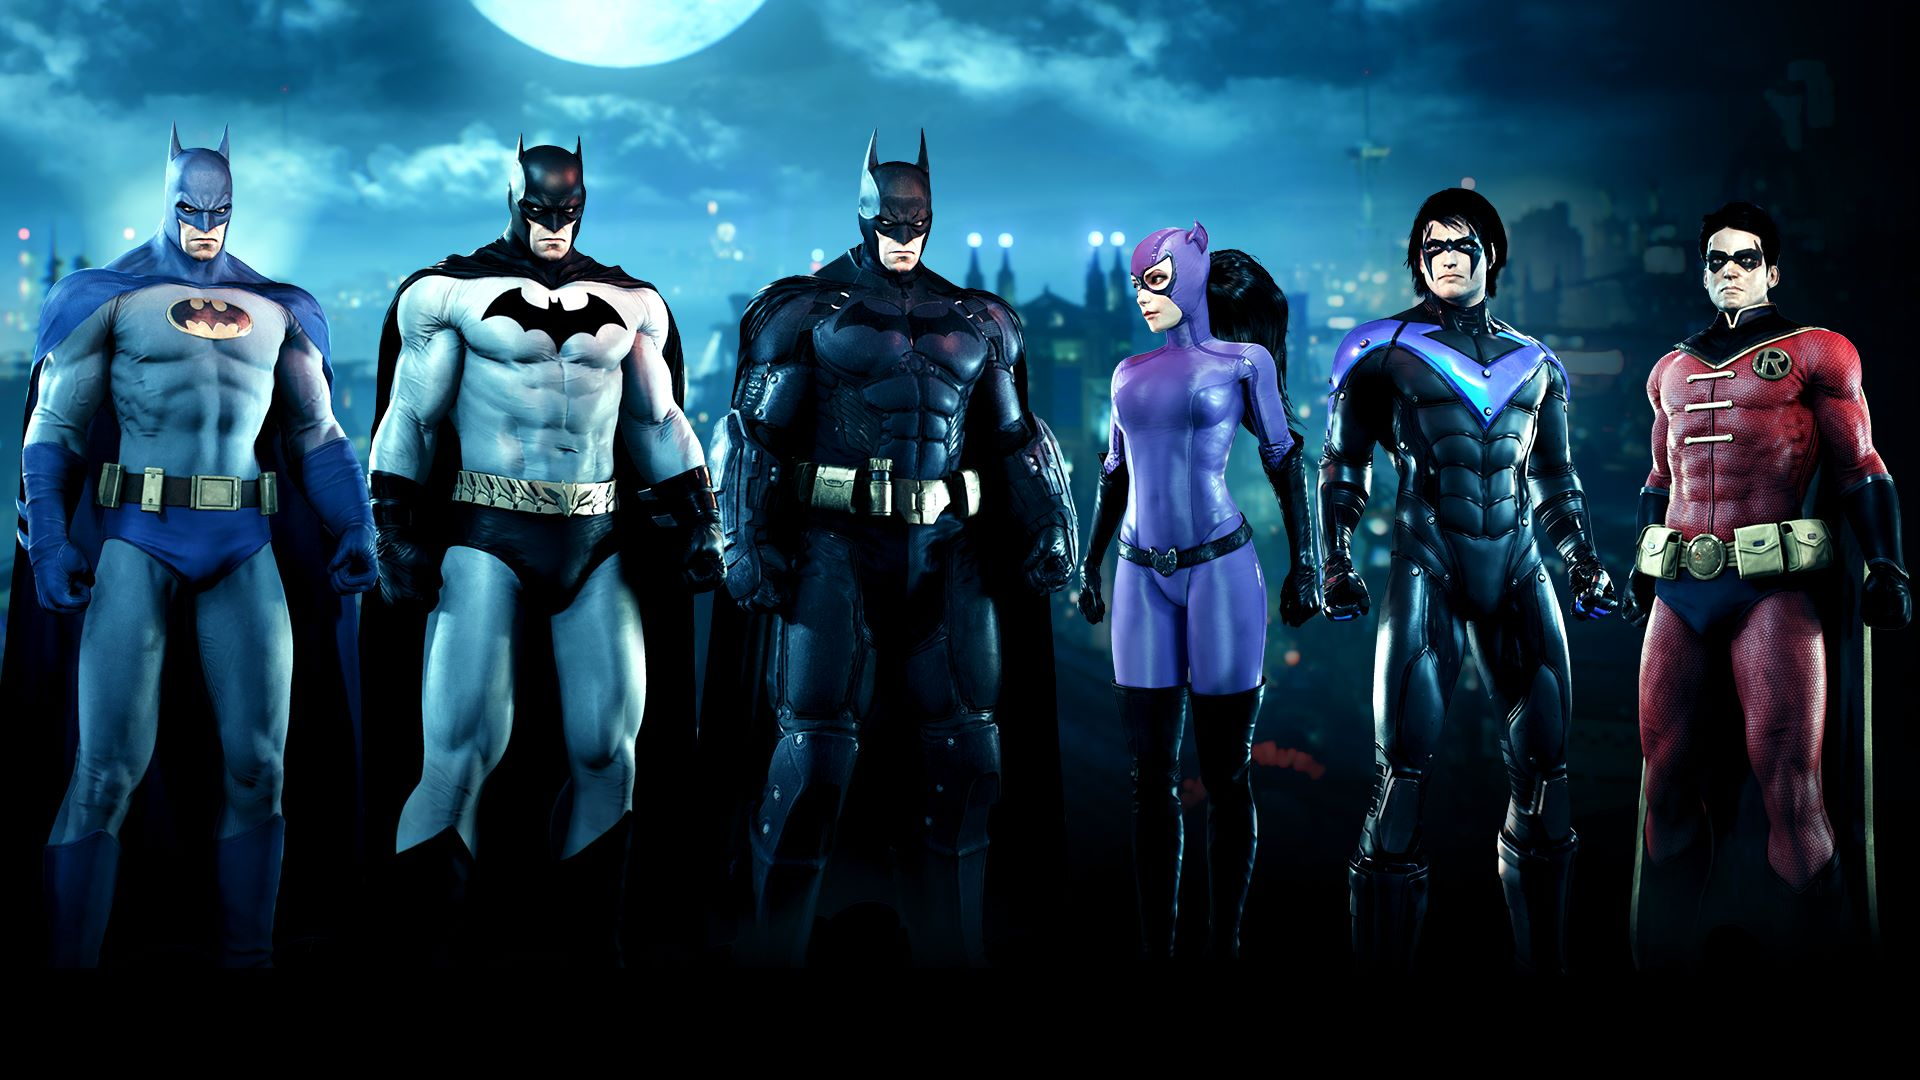 Bat-Family Skin Pack